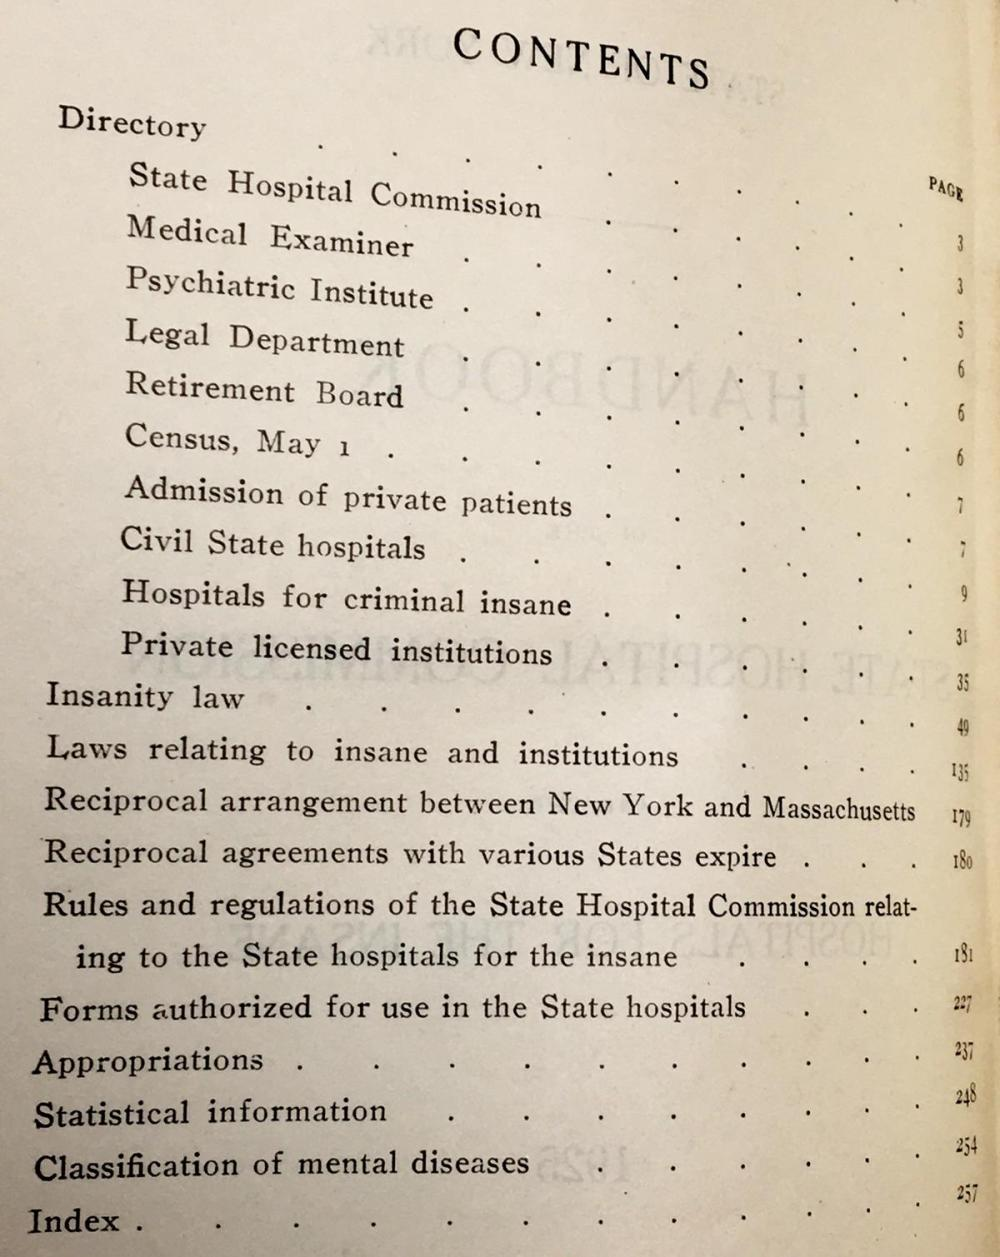 1925 State of New York: Handbook of The State Hospitals Commission and The Hospitals For The Insane